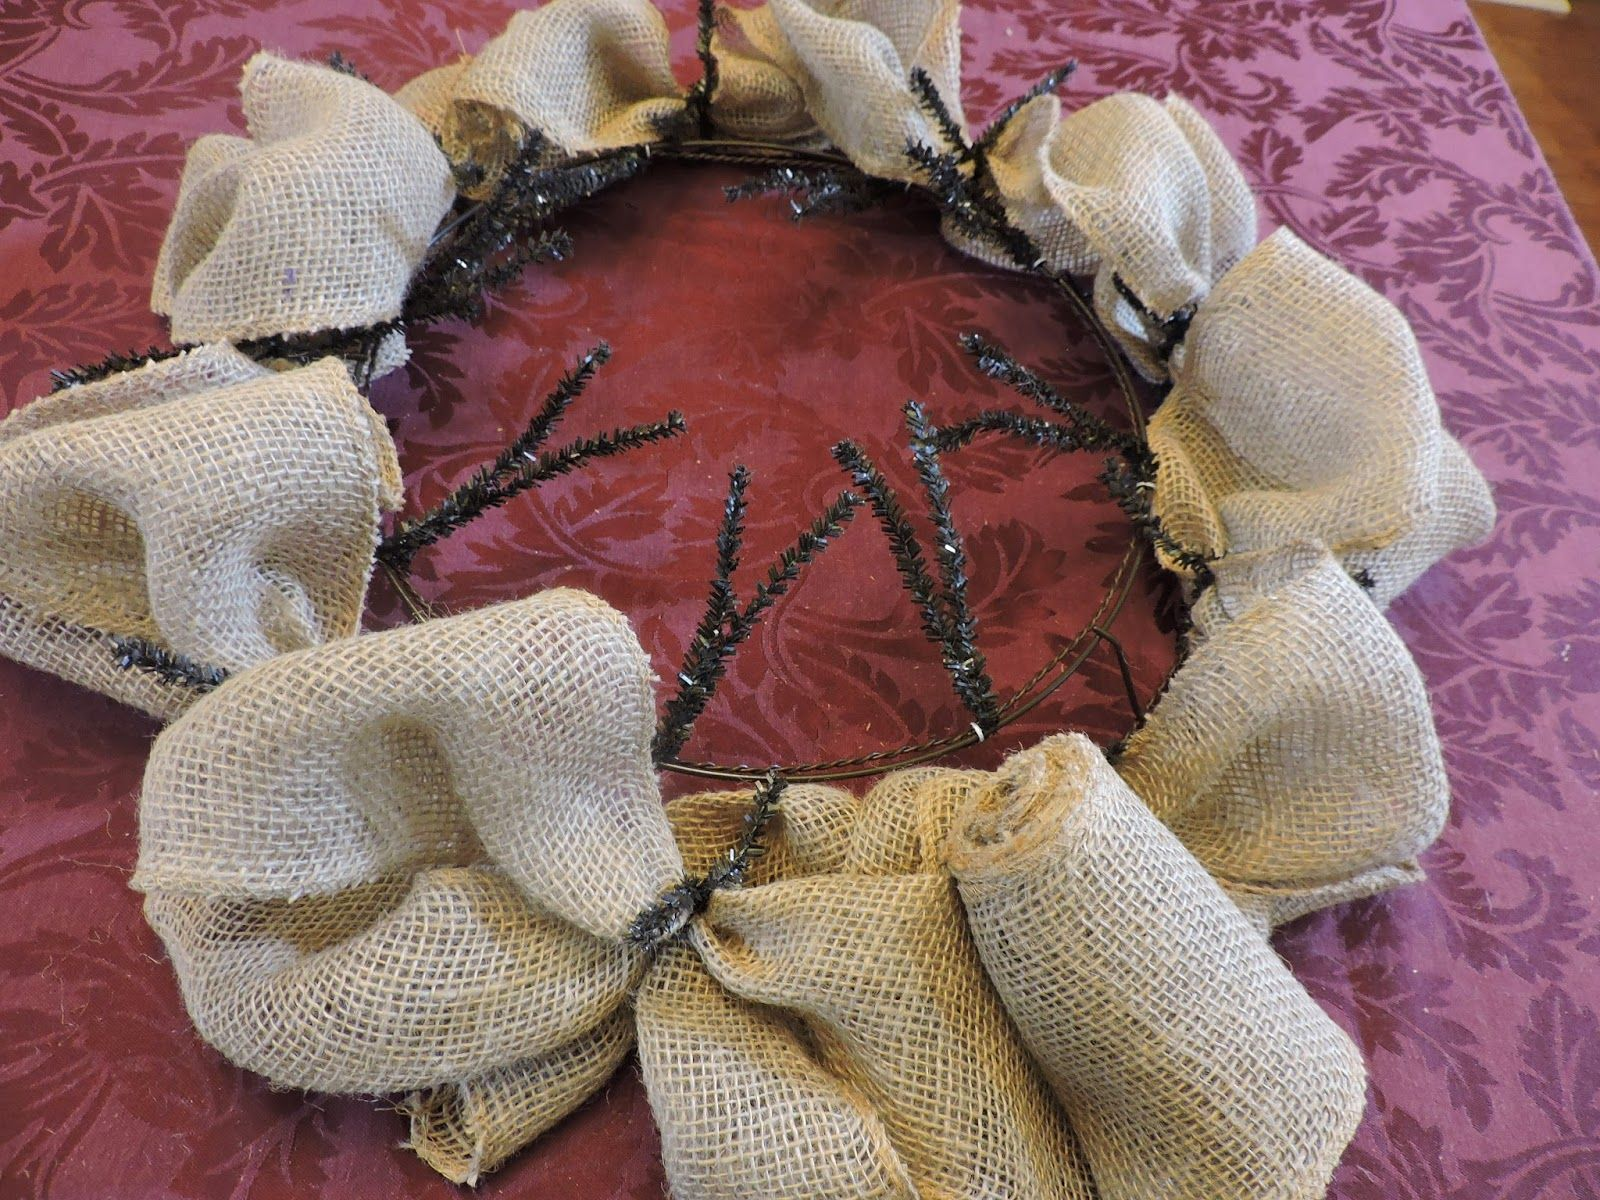 http://neatandcrafty.blogspot.com/2014/08/fall-burlap-wreath.html